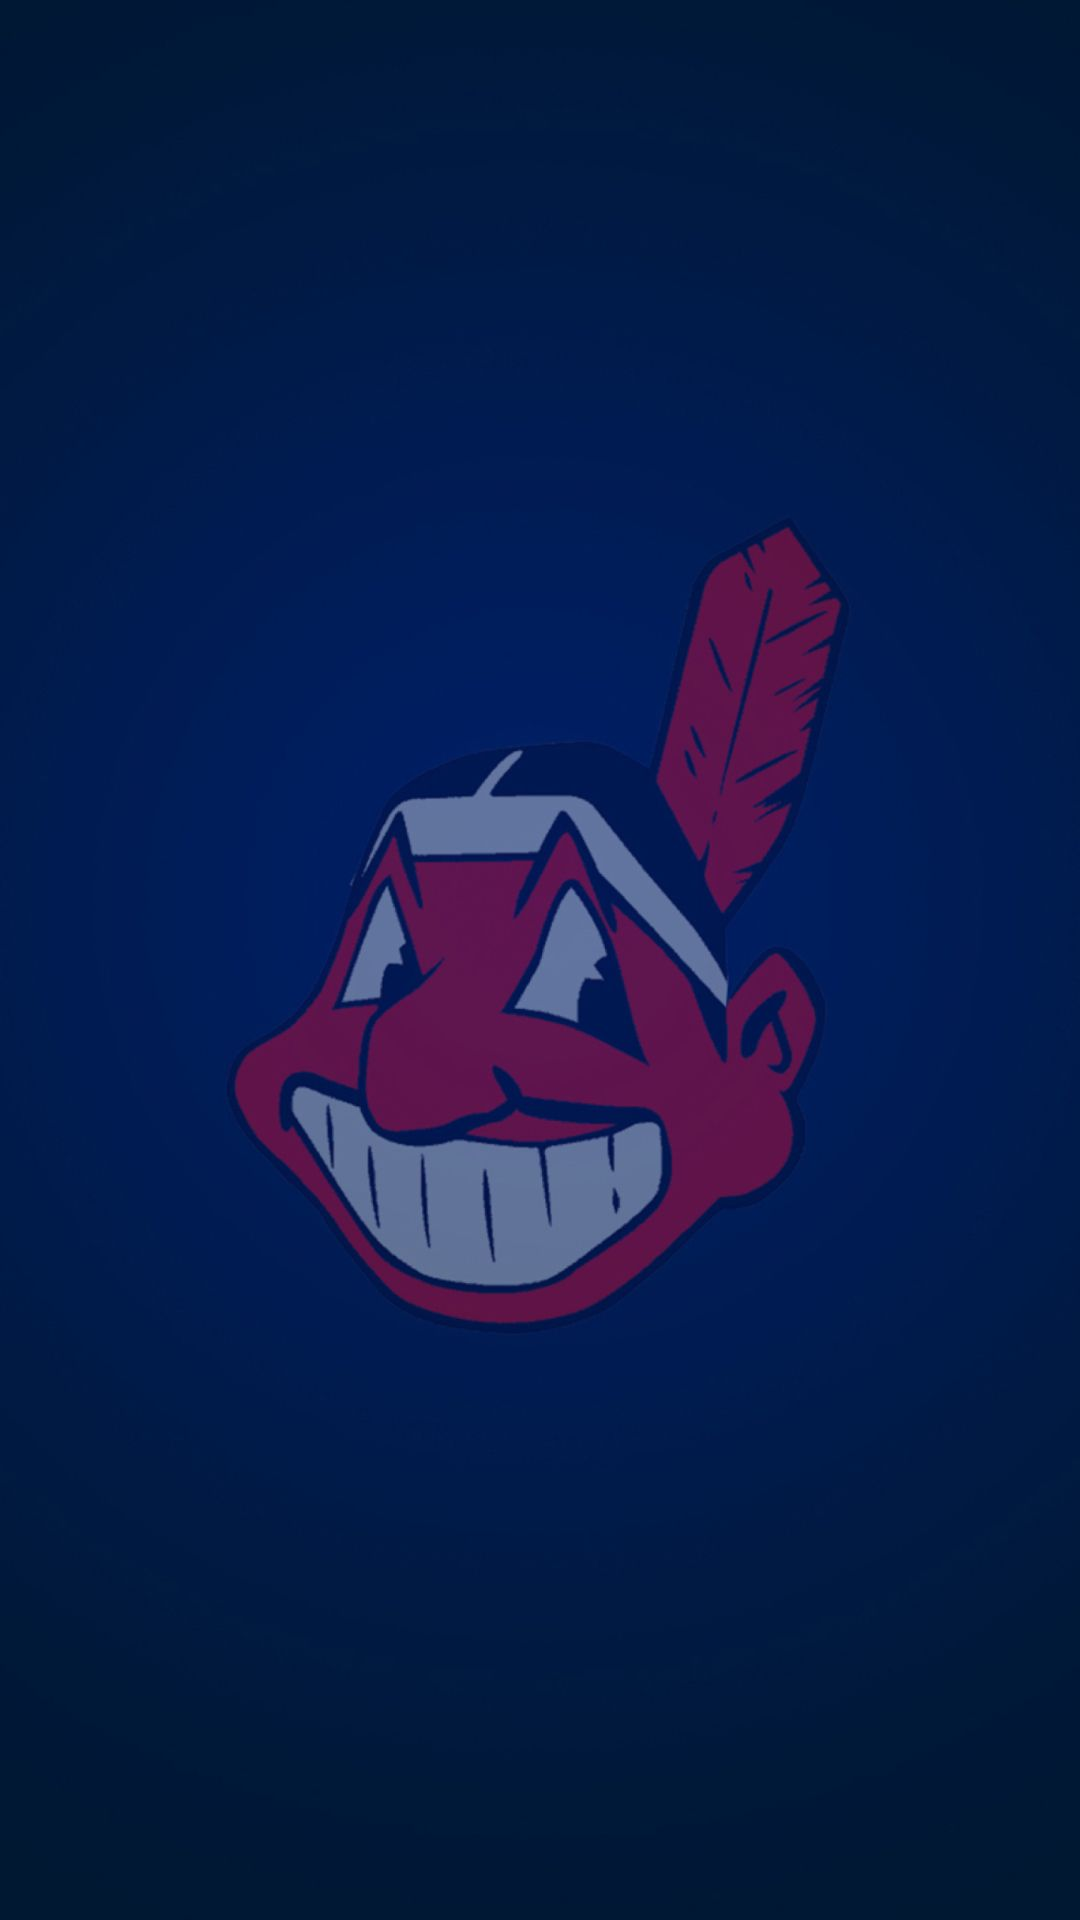 Http Wallpaperformobile Org 16030 Cleveland Indians Android Wallpaper Html Cleveland Indians Boston Red Sox Wallpaper Baseball Wallpaper Red Sox Wallpaper